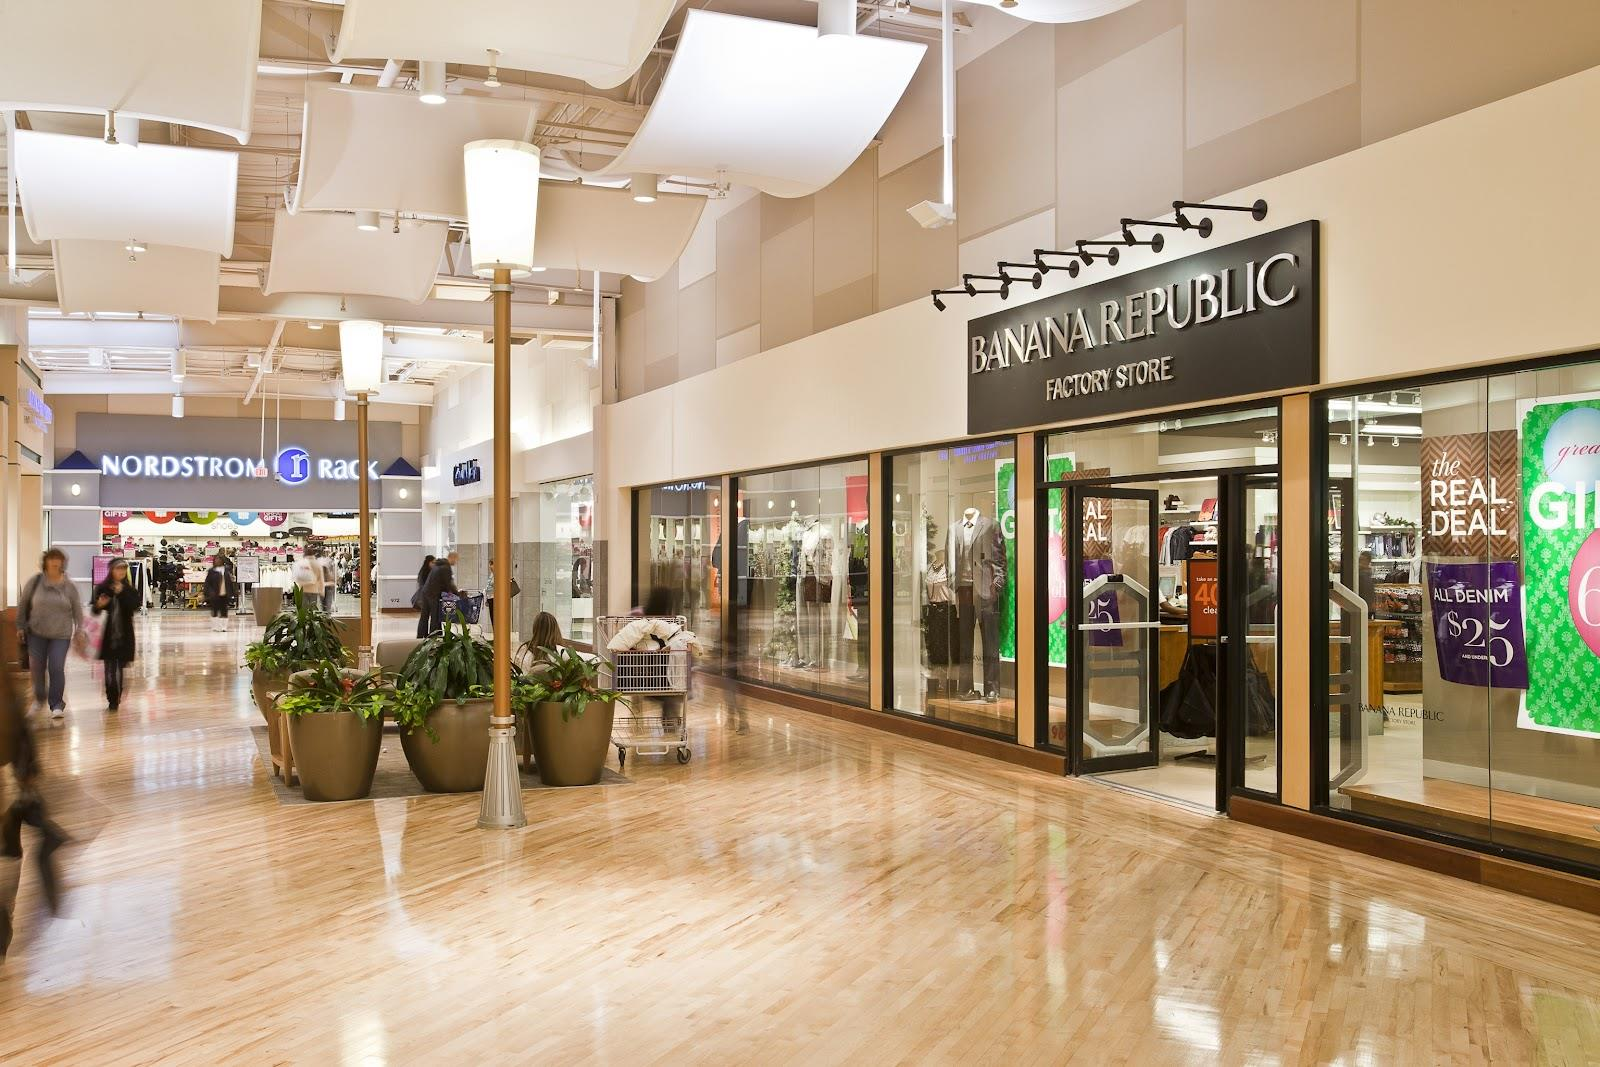 9 Of The Best Malls When Your Student Group Wants To Get